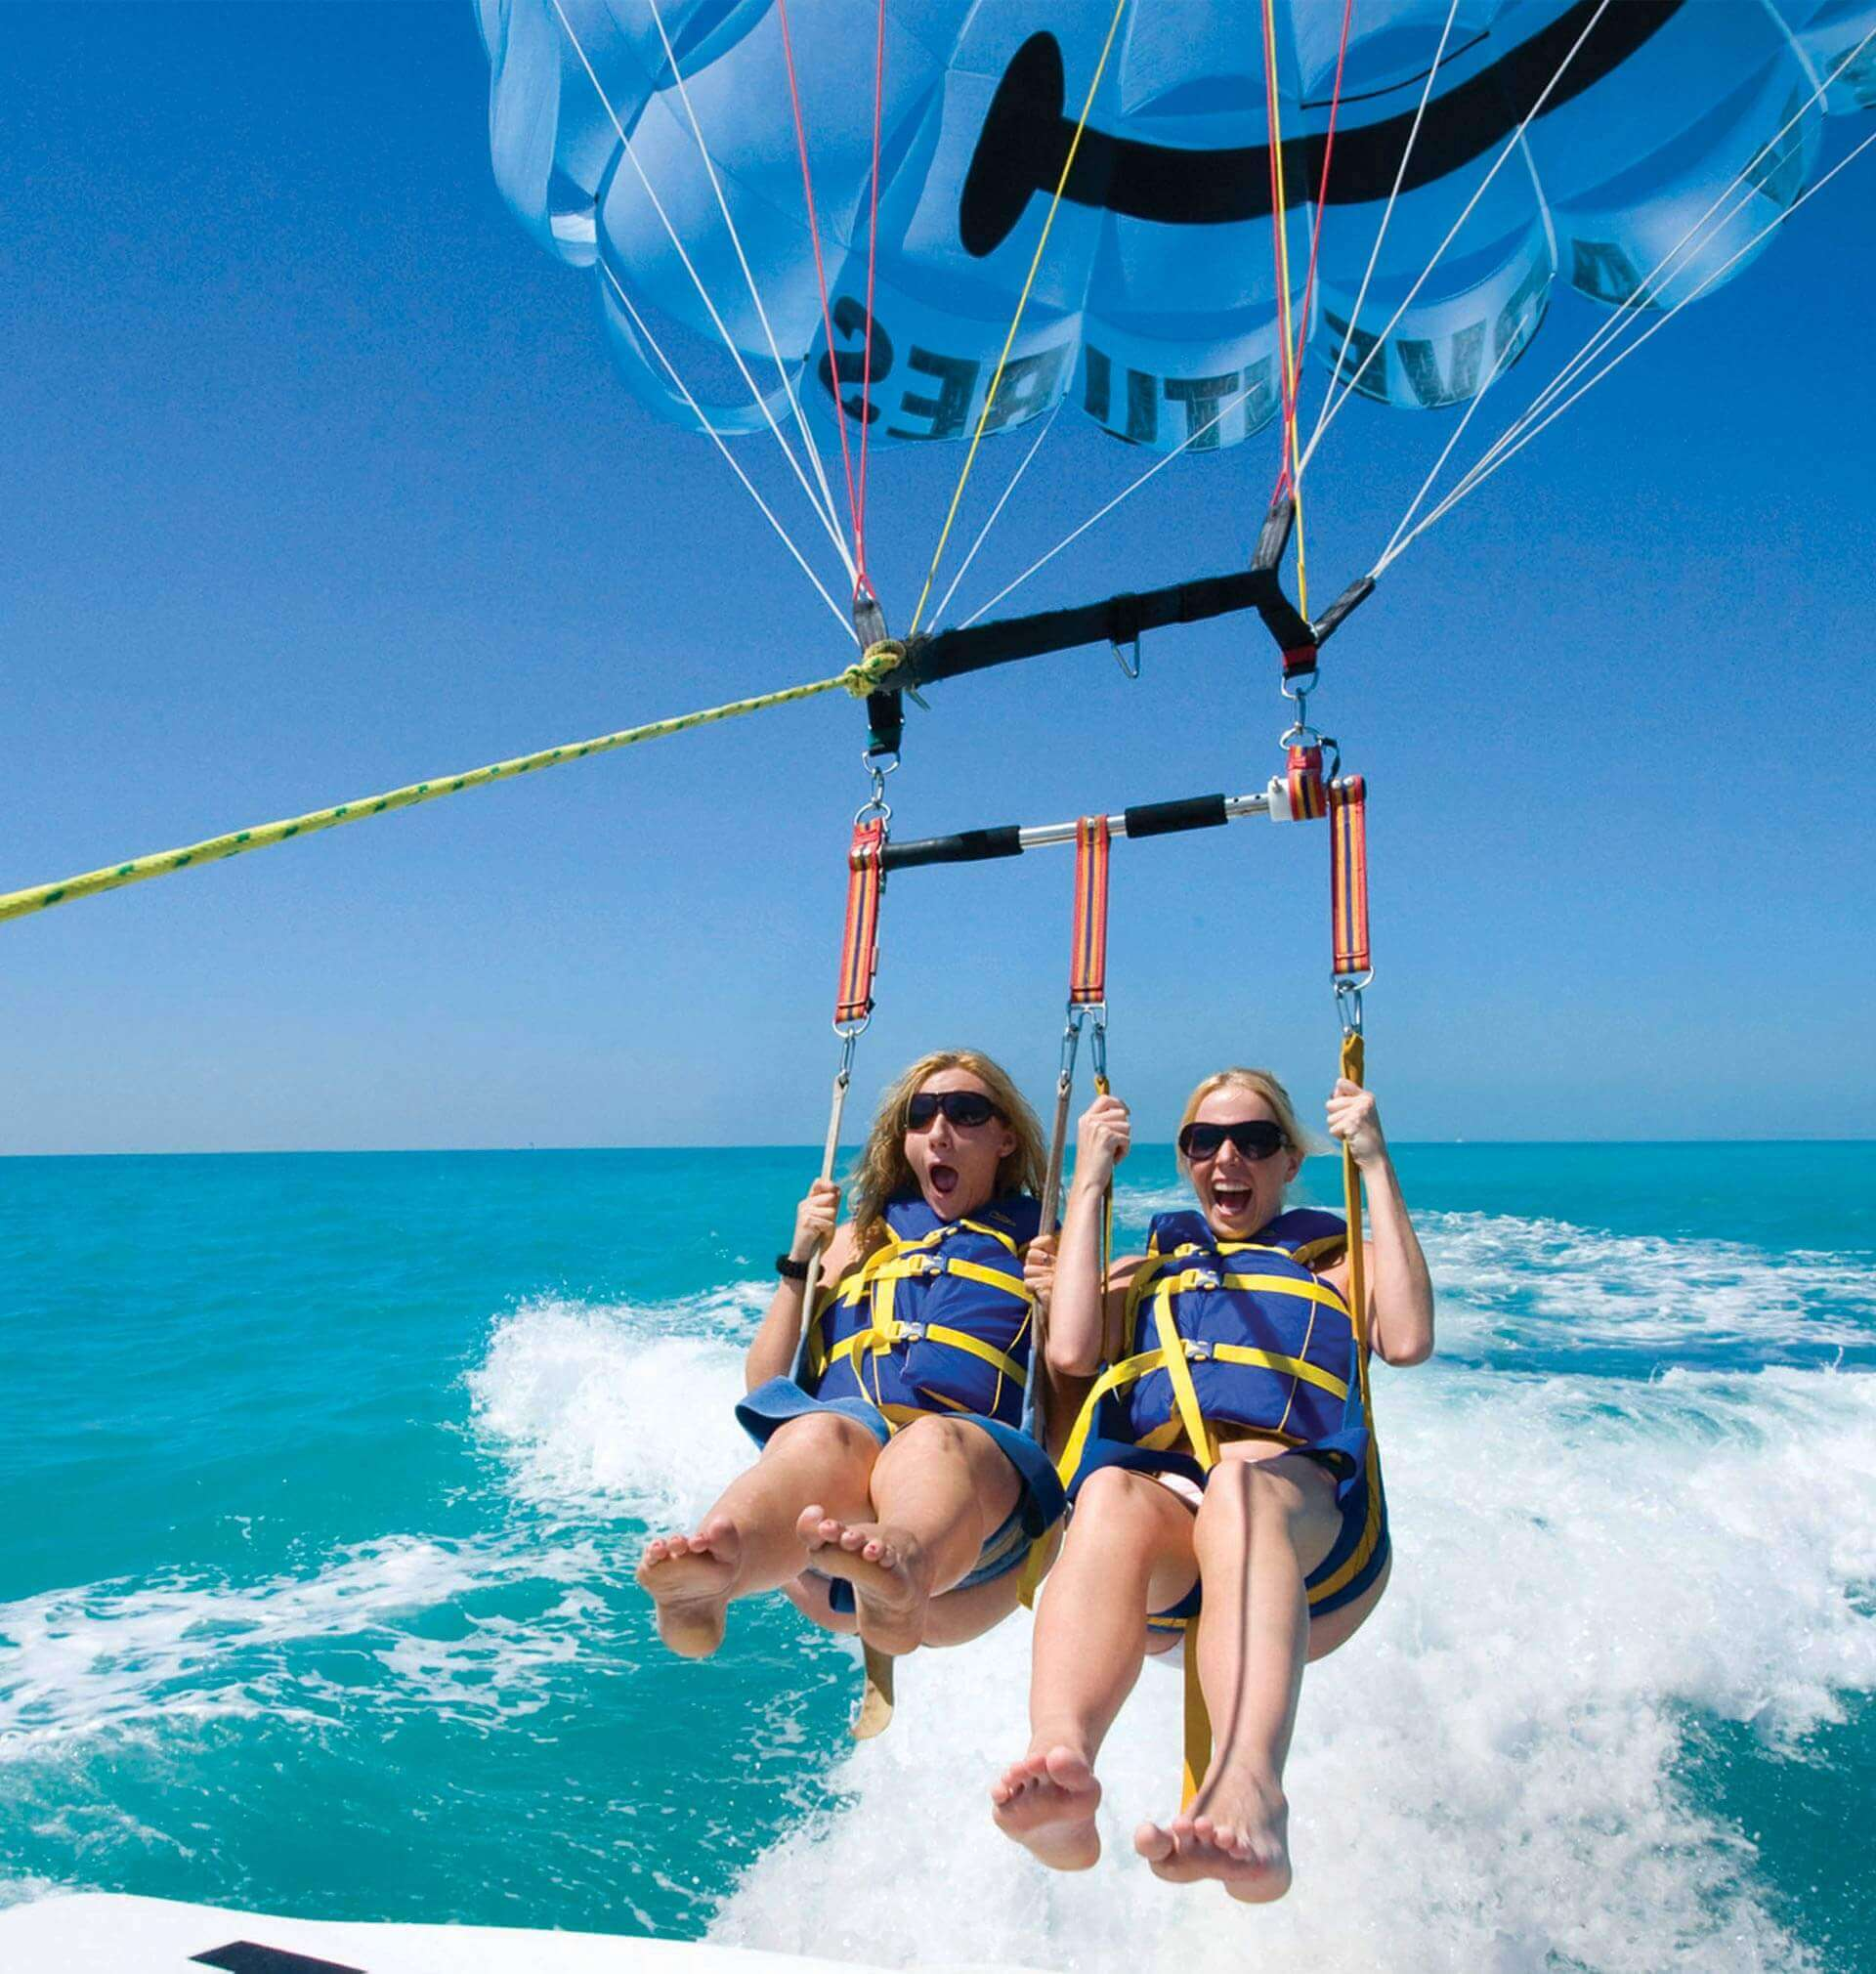 Two women enjoying the parasail thrills